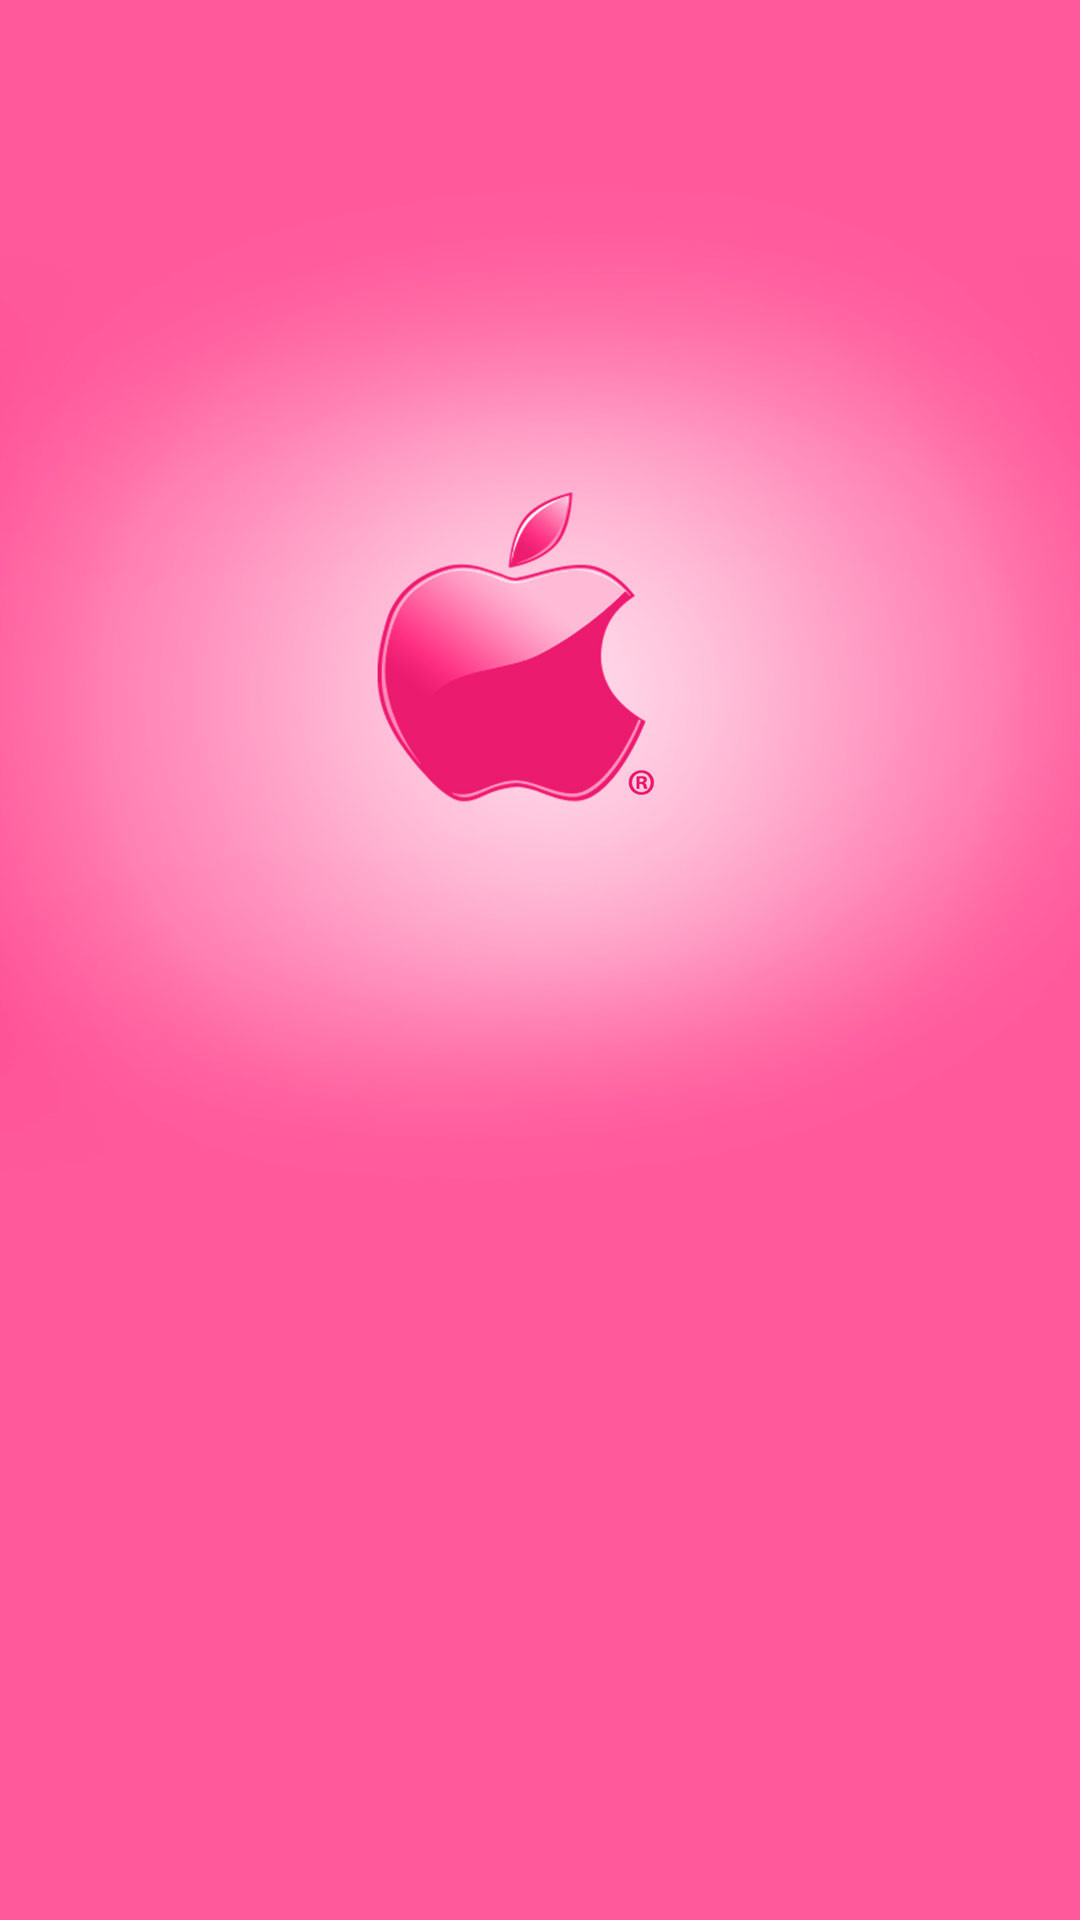 Best Cool iPhone 6 Plus Wallpapers Backgrounds in HD Quality